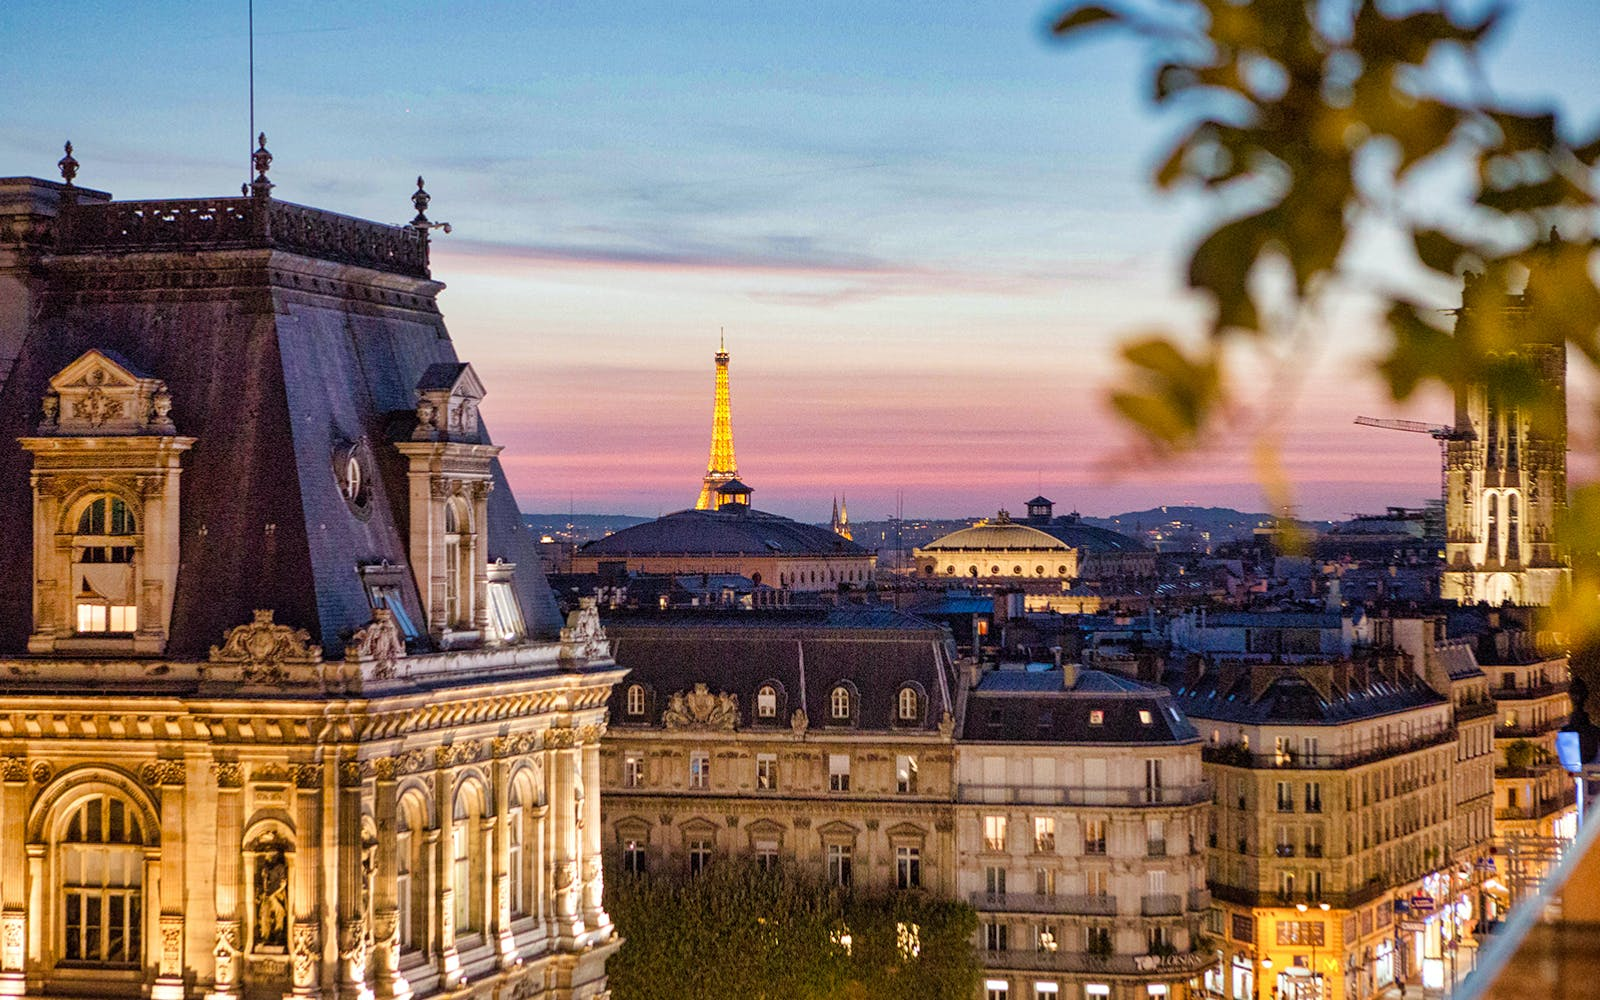 Paris by Night: Eiffel Tower, City Tour & Seine Cruise